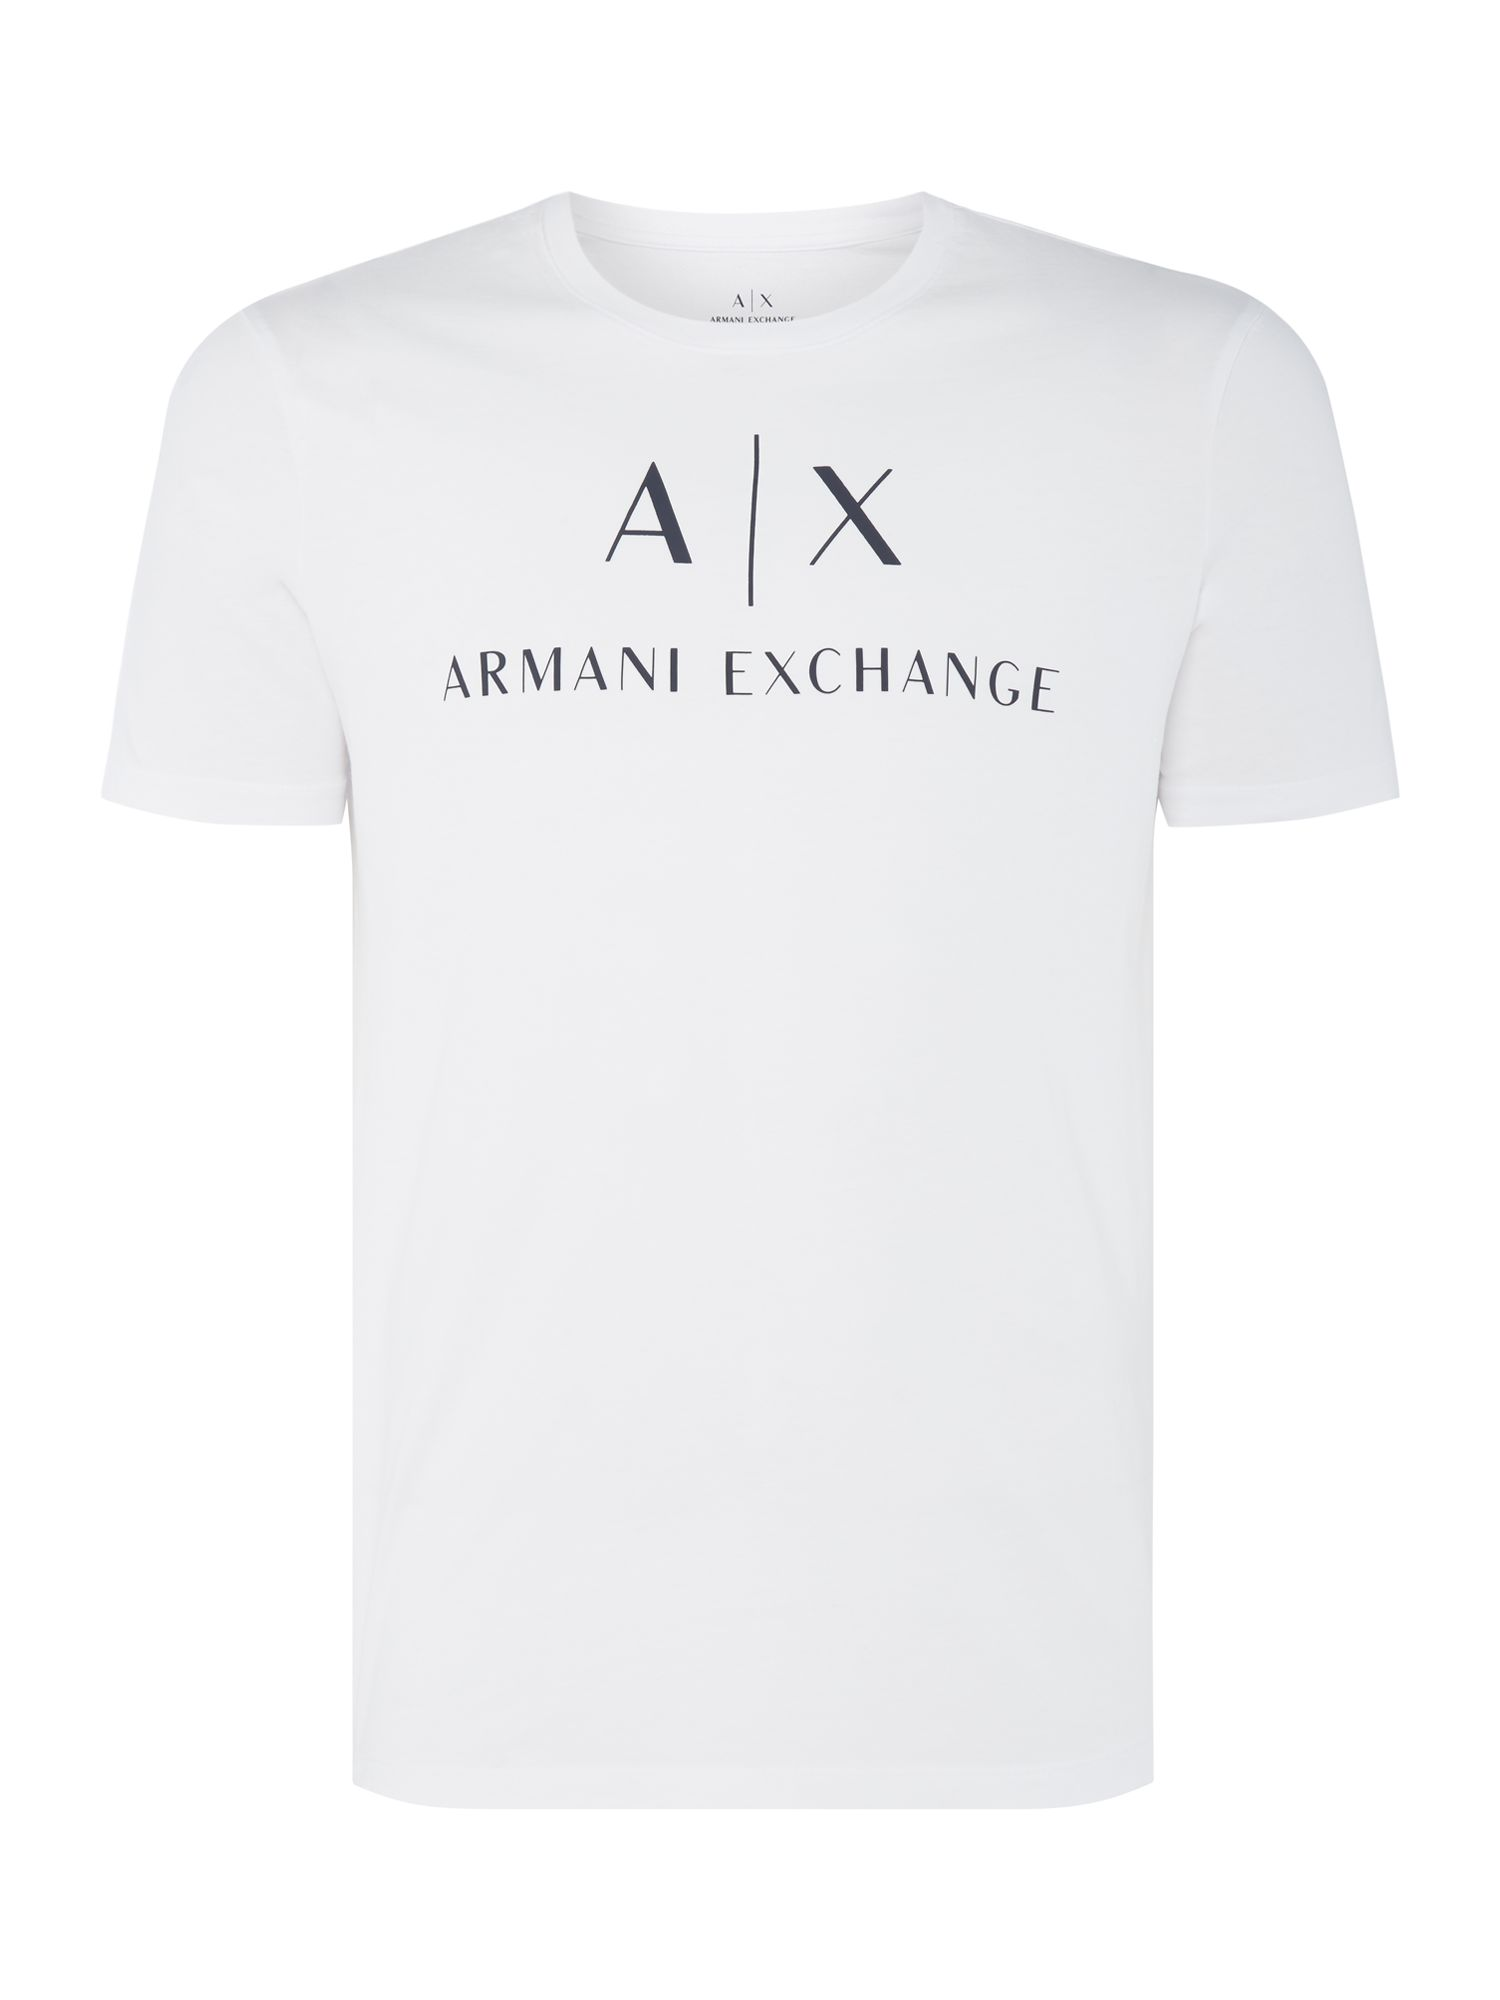 Men's Armani Exchange AX Logo Tshirt, White